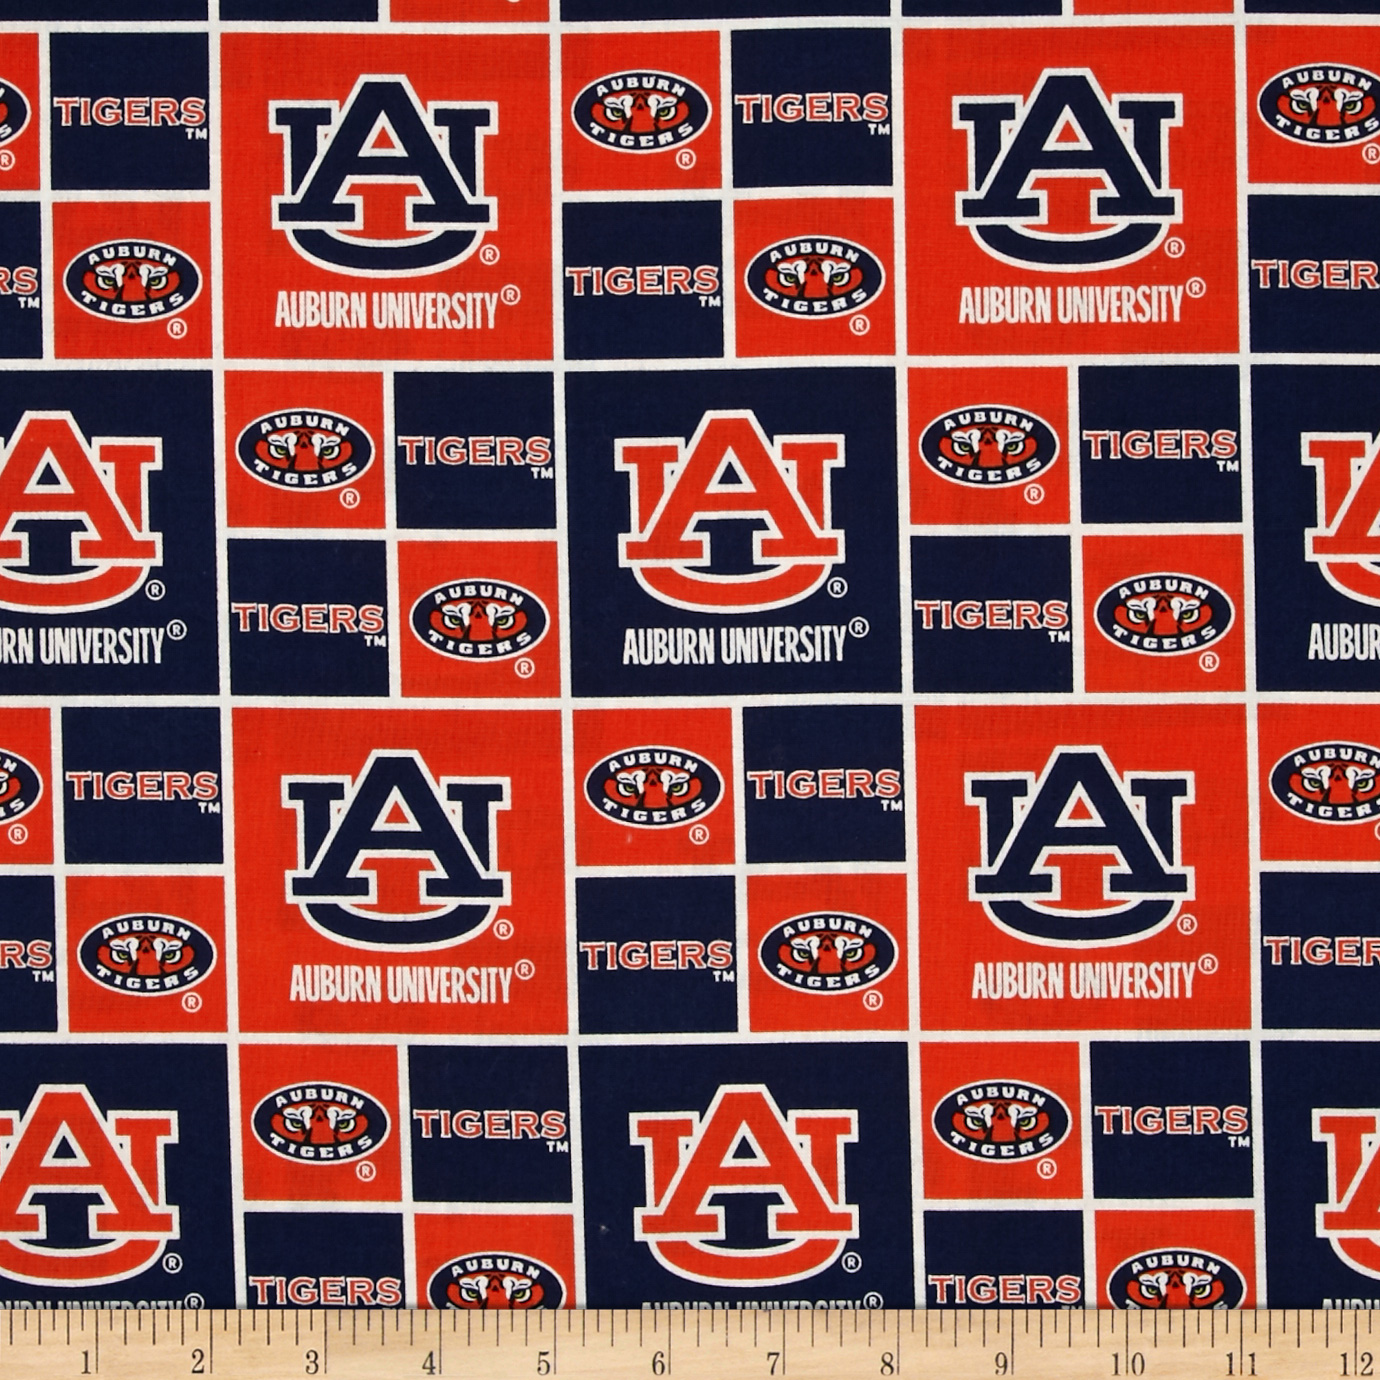 Collegiate Cotton Broadcloth Auburn Tigers Fabric Style 417858 by Sykel in USA